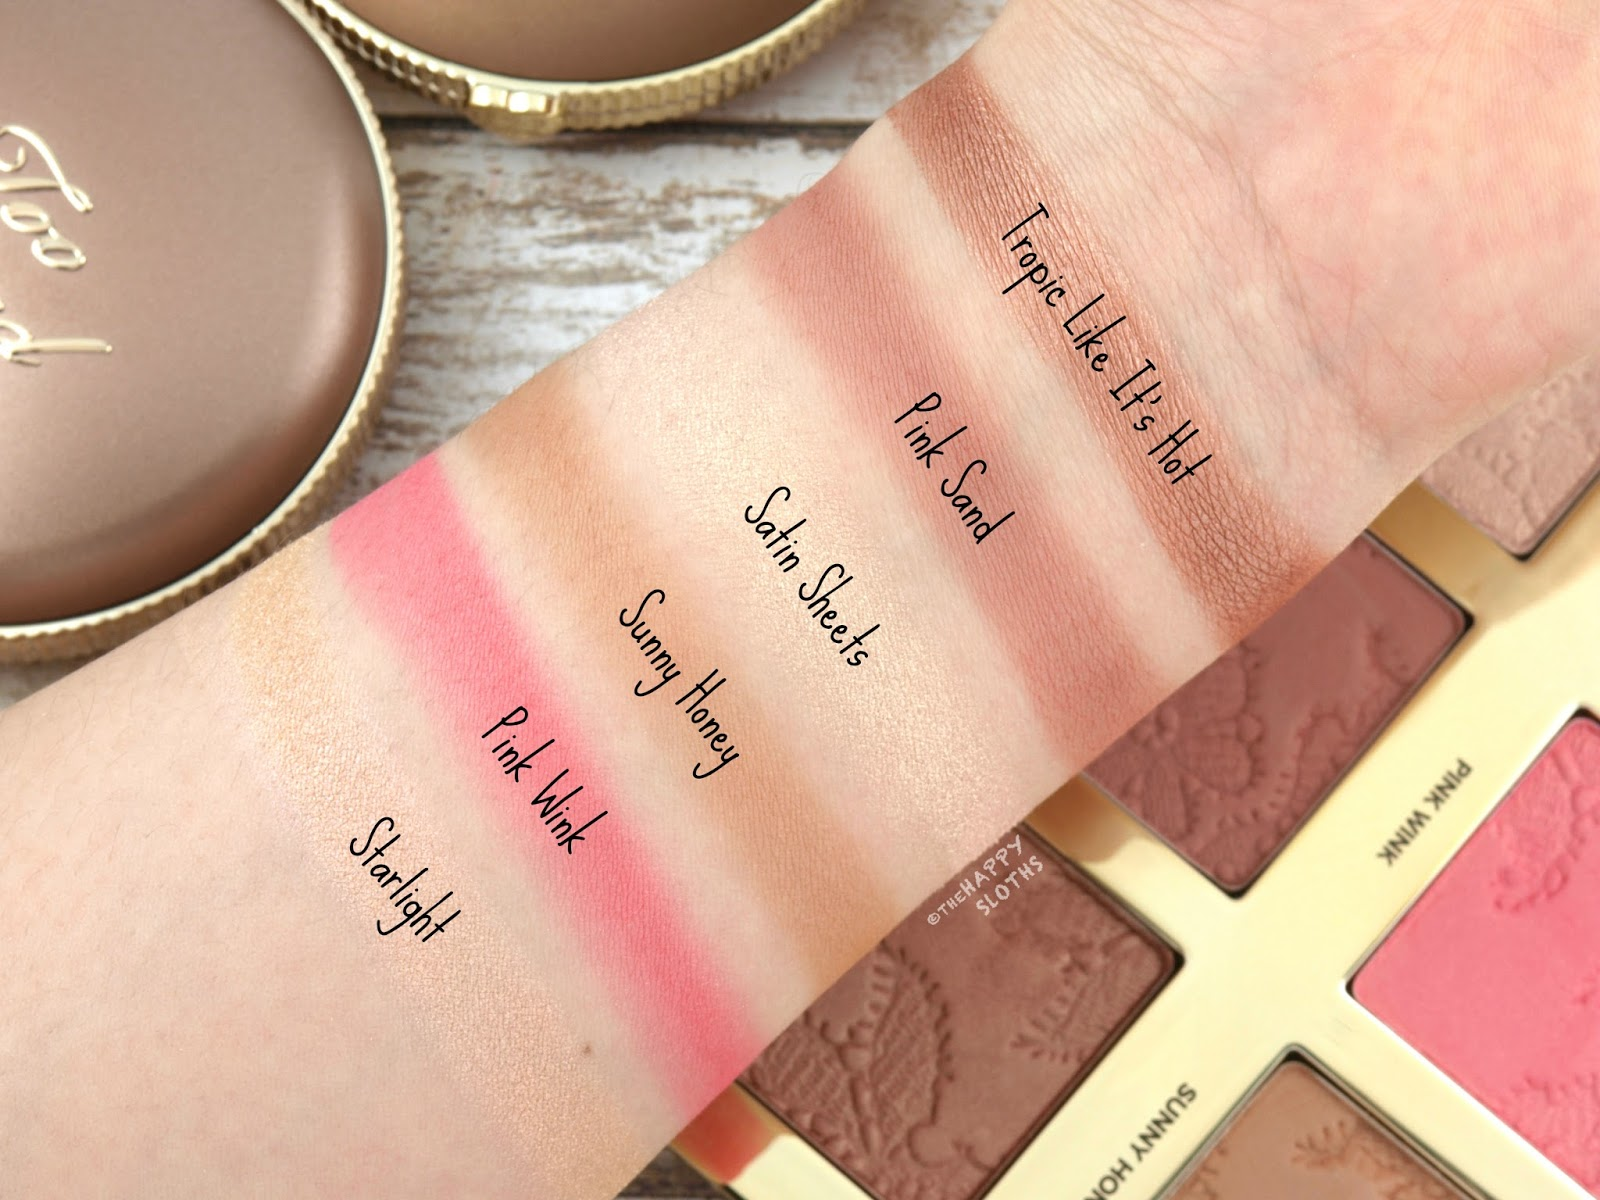 Too Faced Natural Face Makeup Palette: Review and Swatches